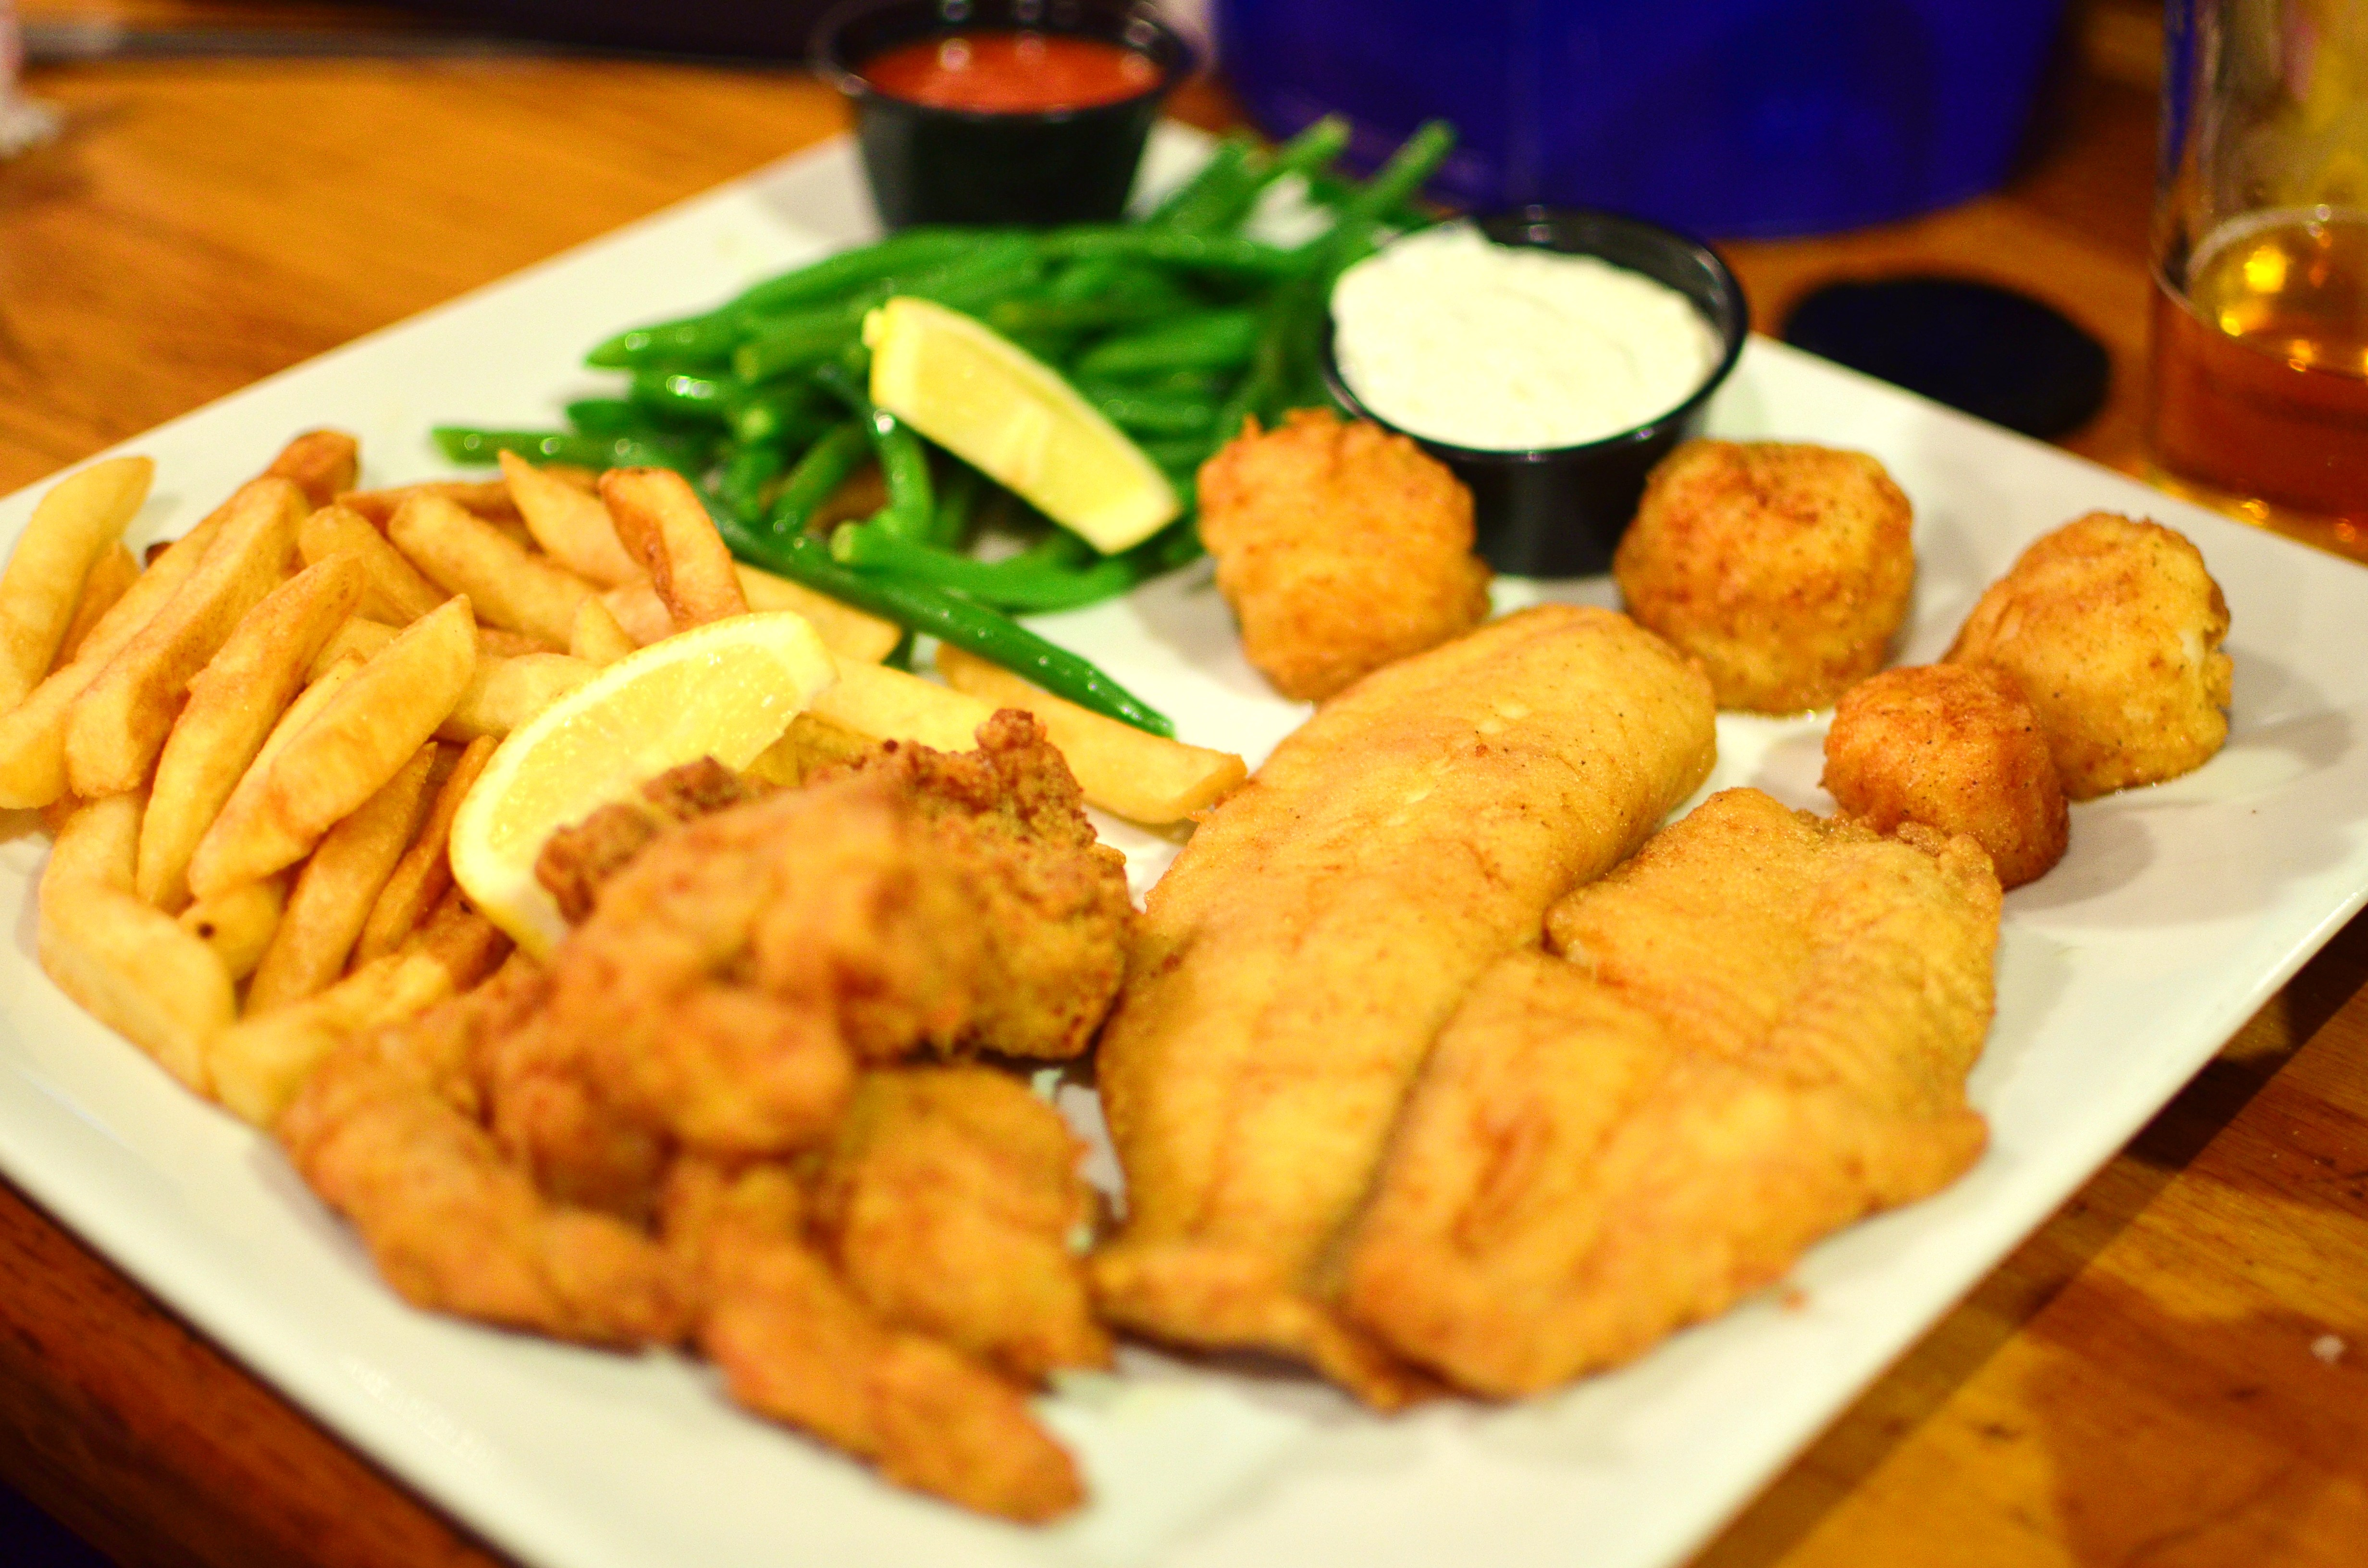 Captain's platter with fried shrimp, tilapia, and scallops